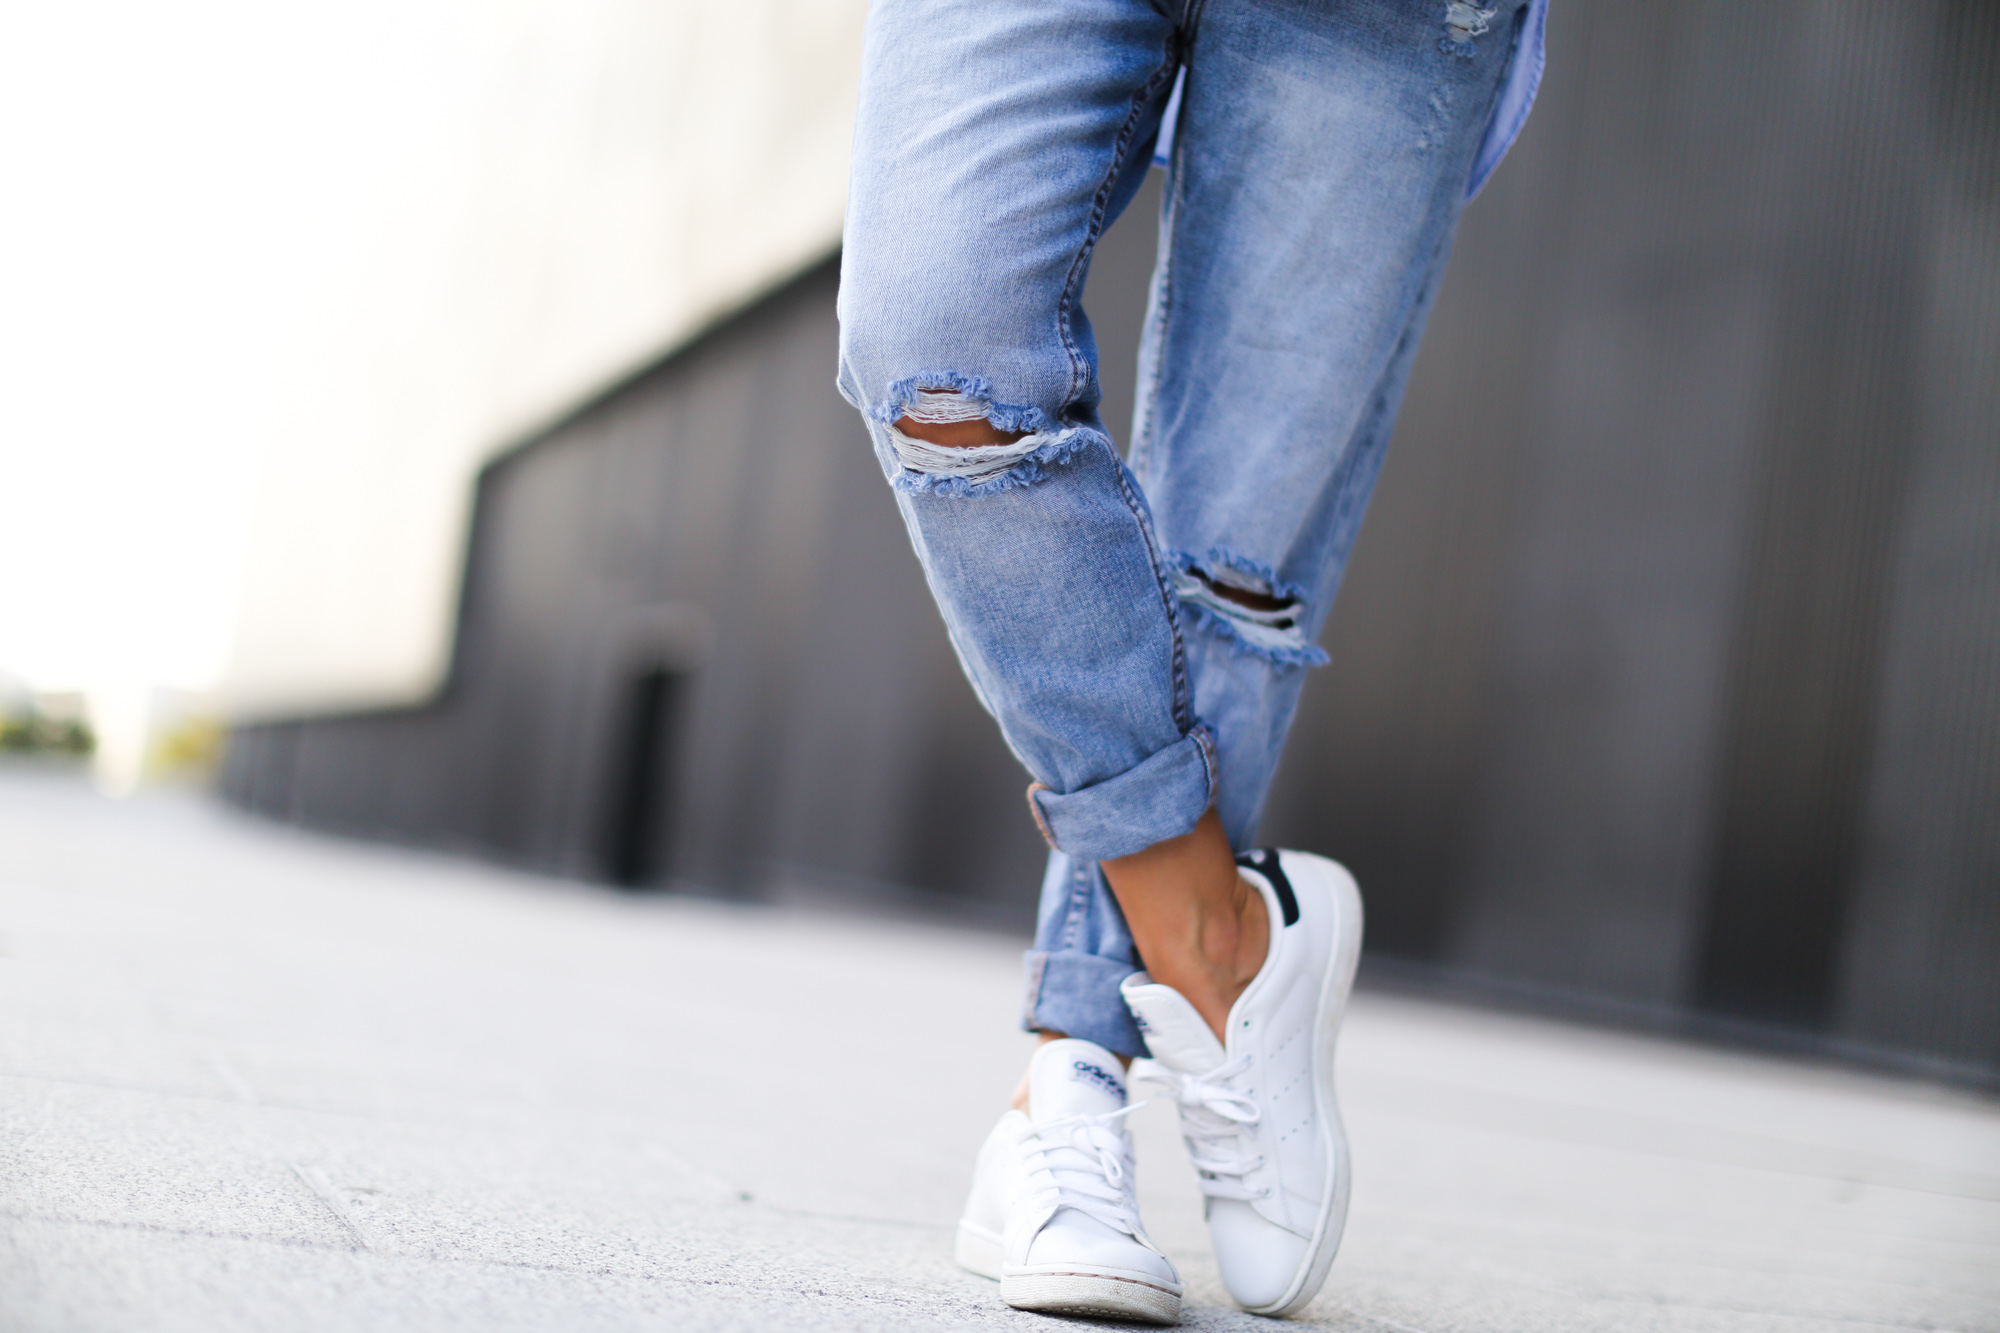 Clochet-streetstyle-suiteblanco-boyfriend-jeans-striped-sweater-adidas-stan-smith-9